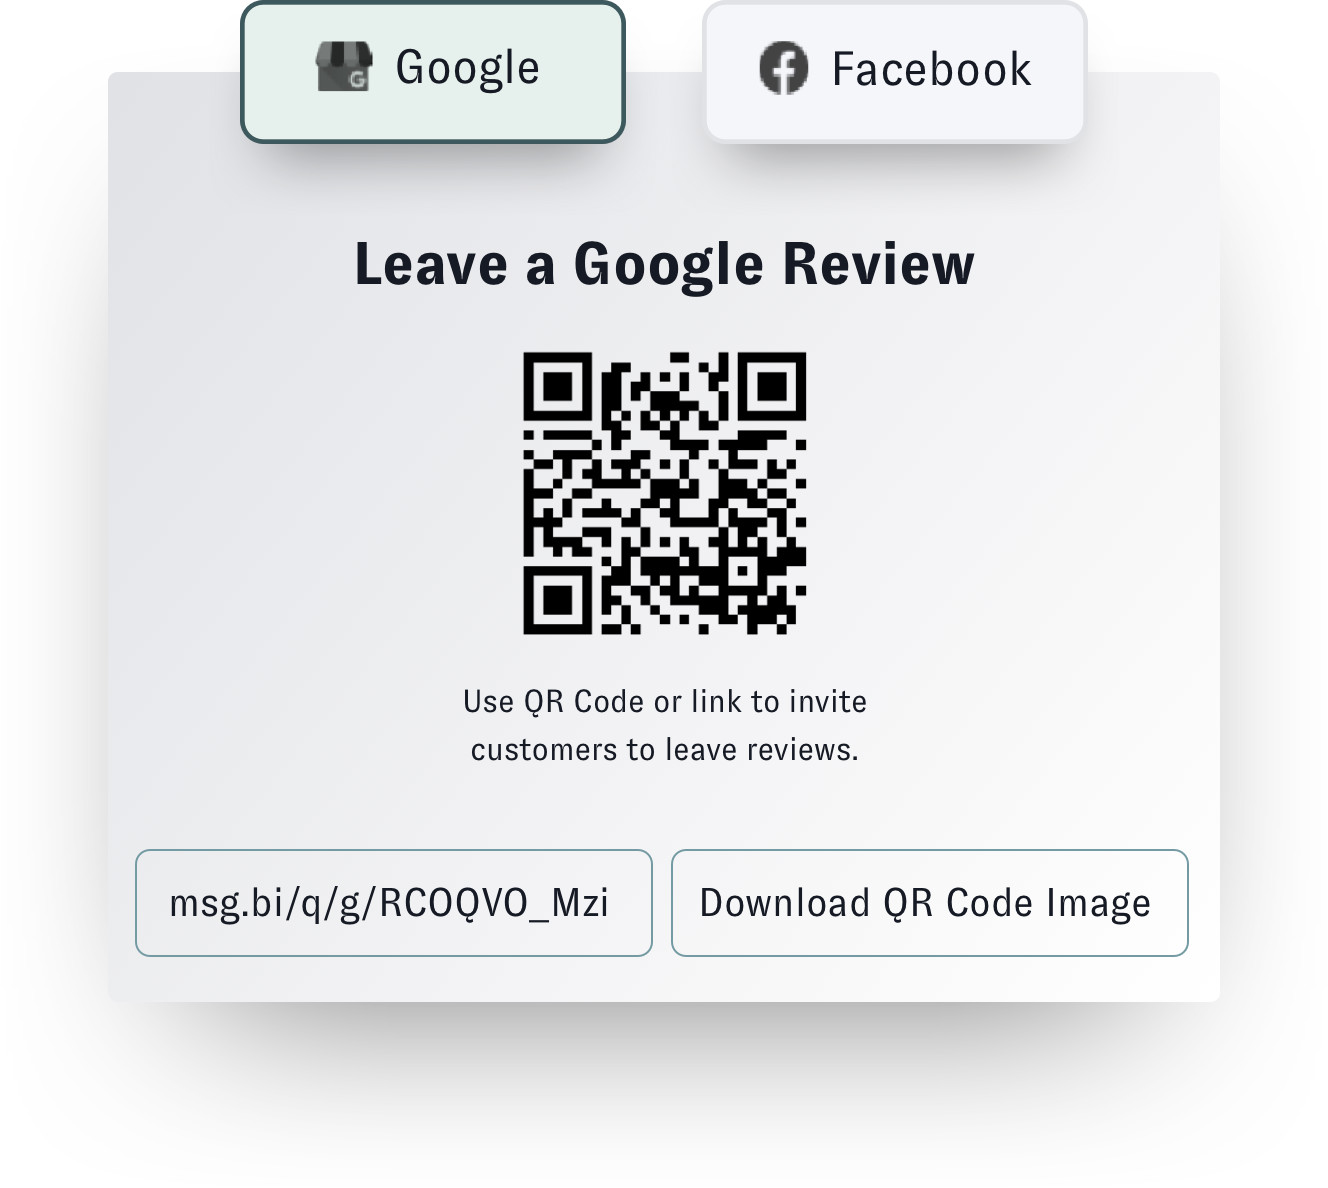 Nuvi Review givens the options using a QR code to place around a physical location or to put on physical newsletters or ads. This shows a QR code and is titled leave a Google review. Below herea re options